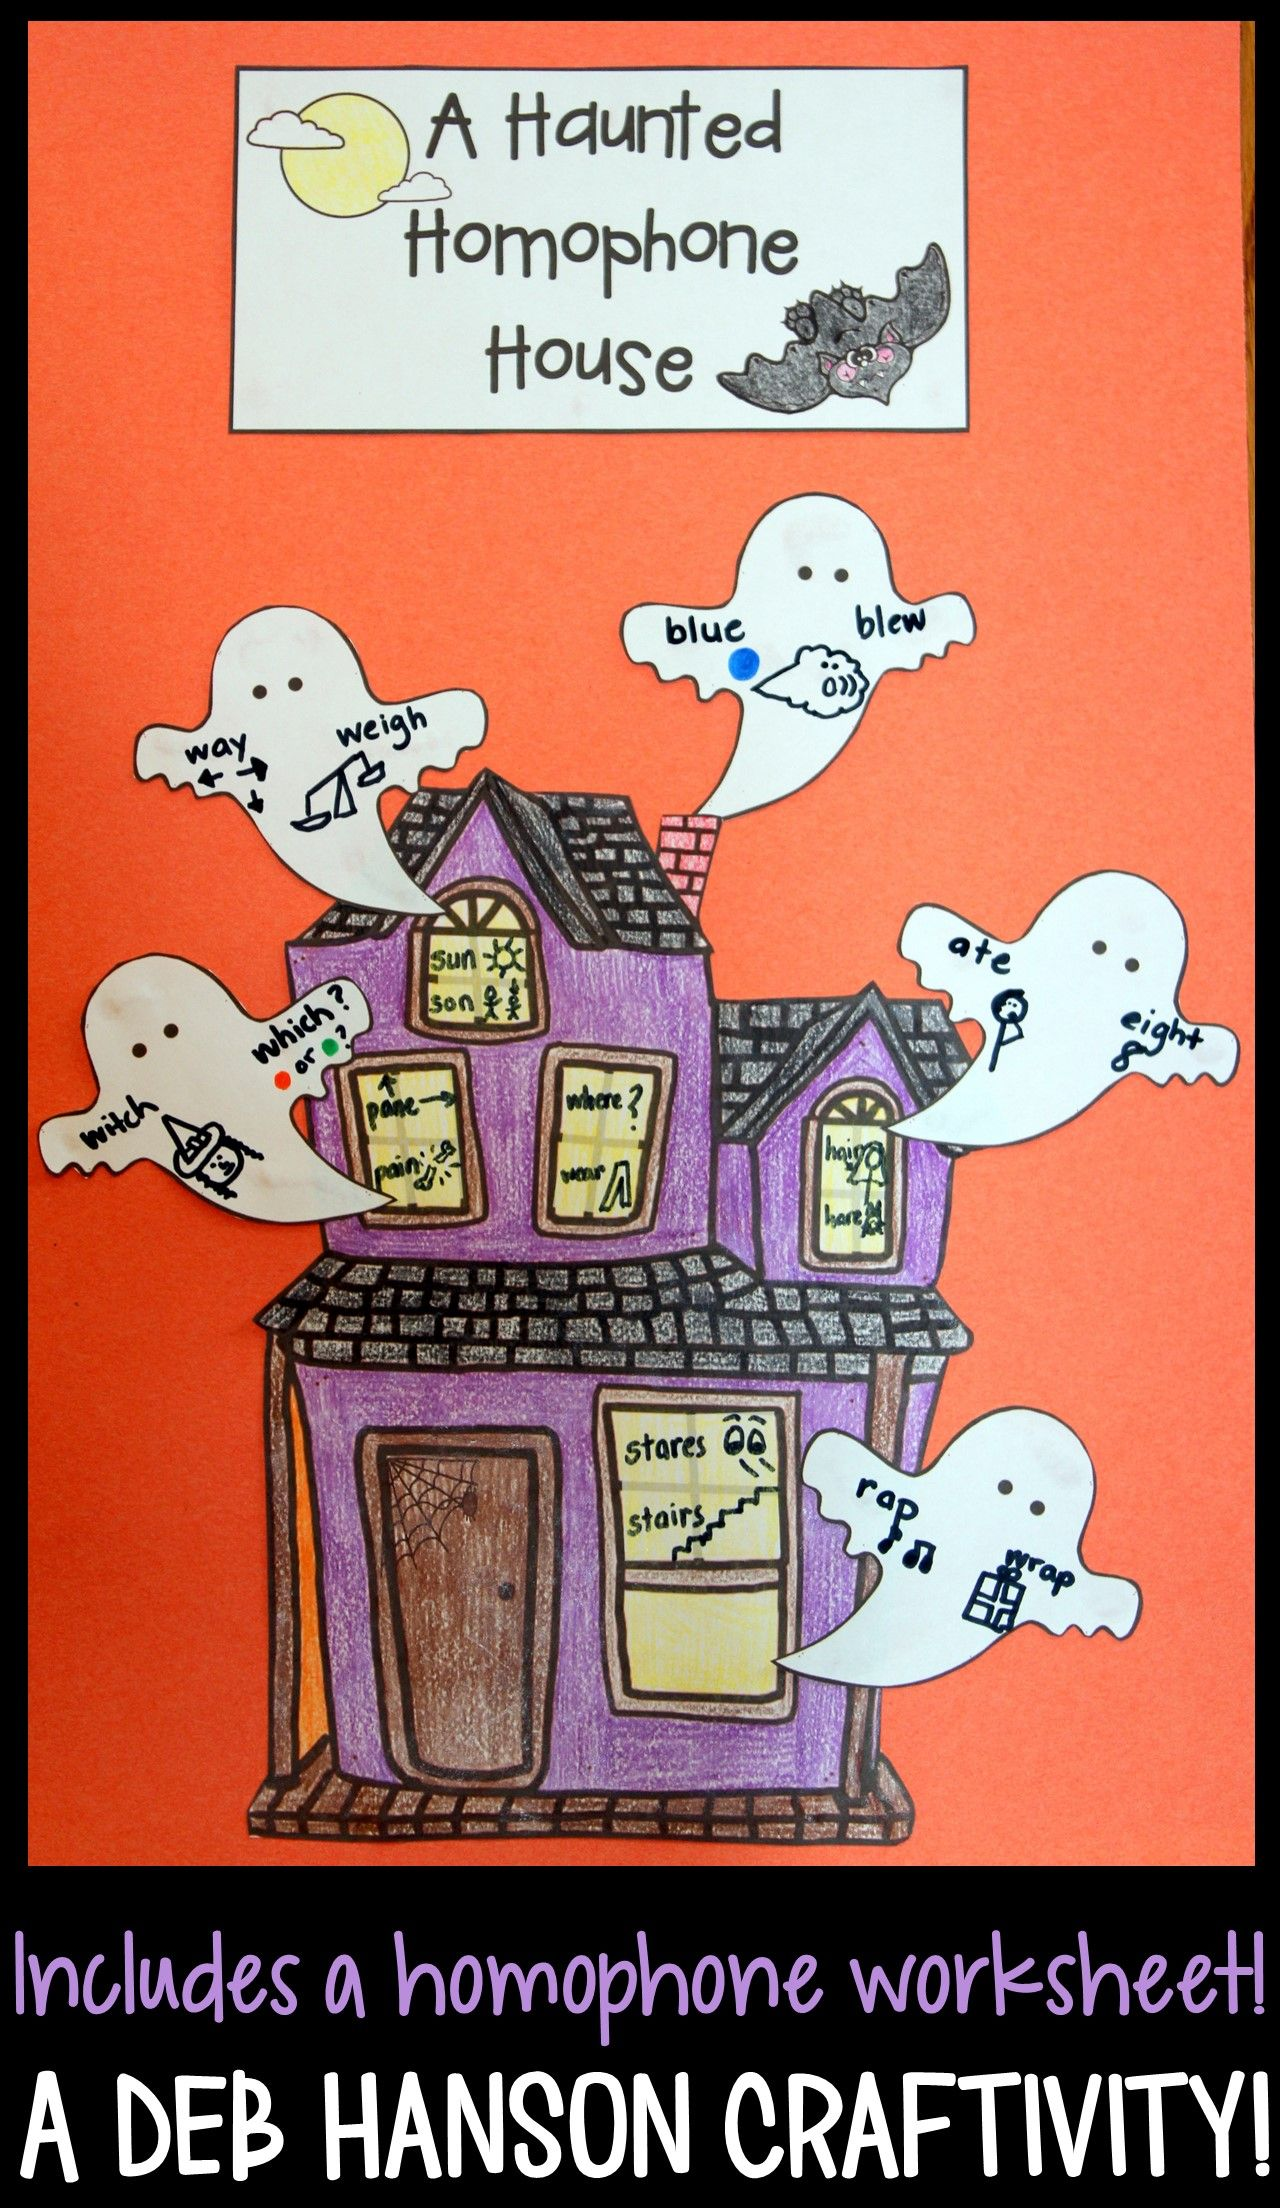 Haunted House Craftivity That Focuses On Homophones